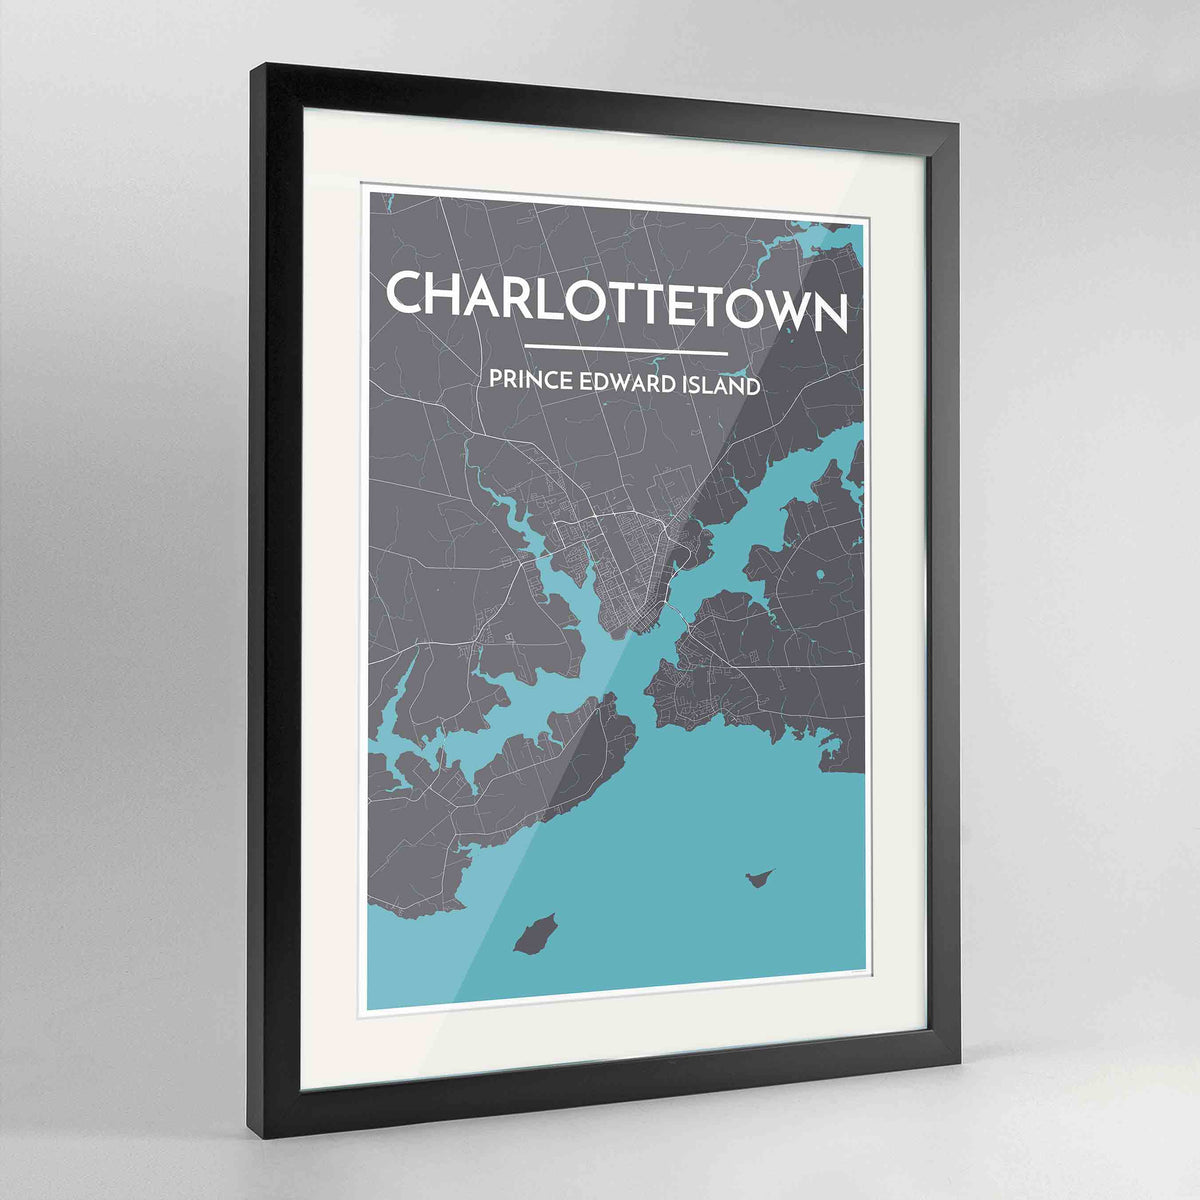 "Framed Charlottetown City Map 24x36"" Contemporary Black frame Point Two Design Group"